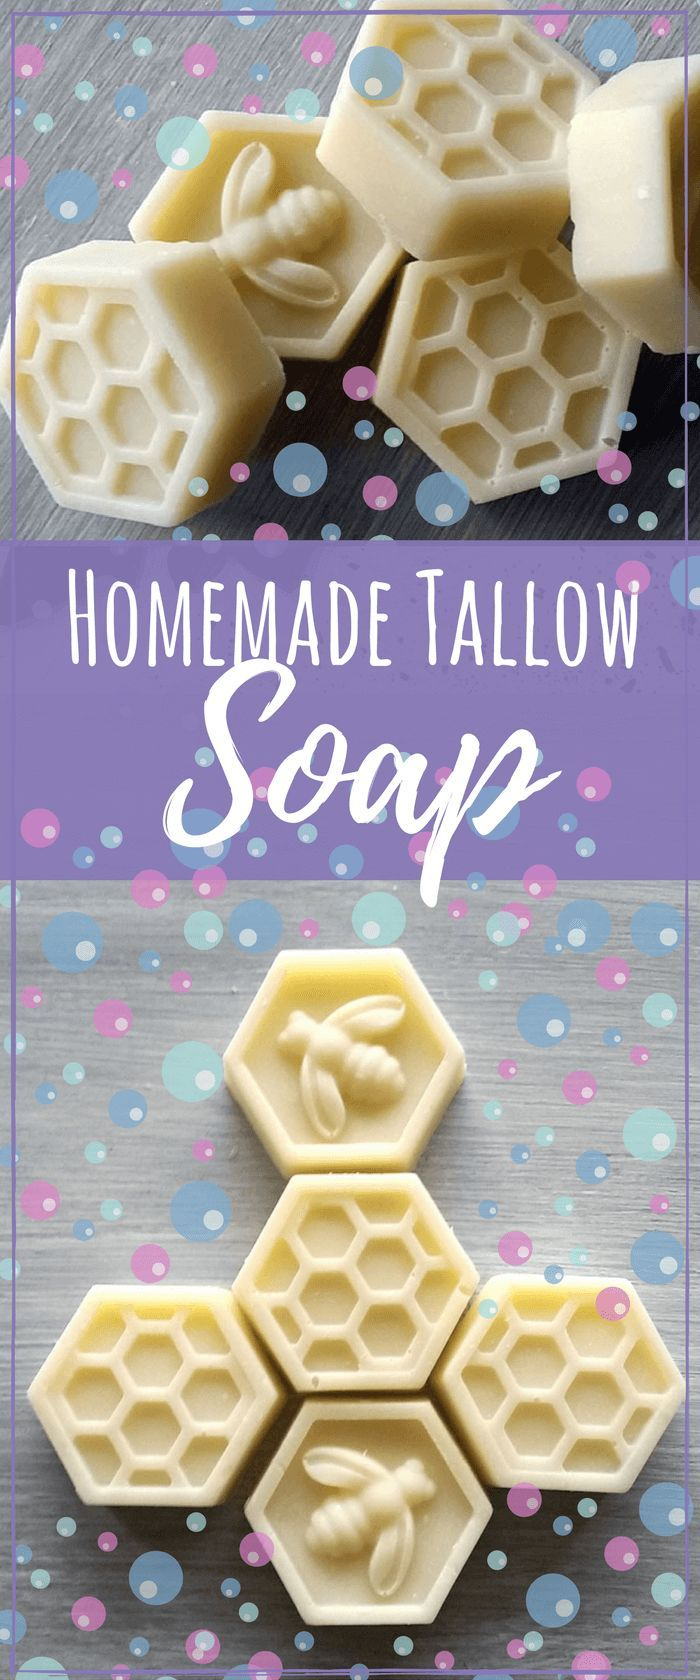 This homemade tallow soap recipe will help moisturize your skin very well since tallow is similar to our own skin properties. #soapmaking #soaprecipes #skincarerecipes #skincare via @simplepure